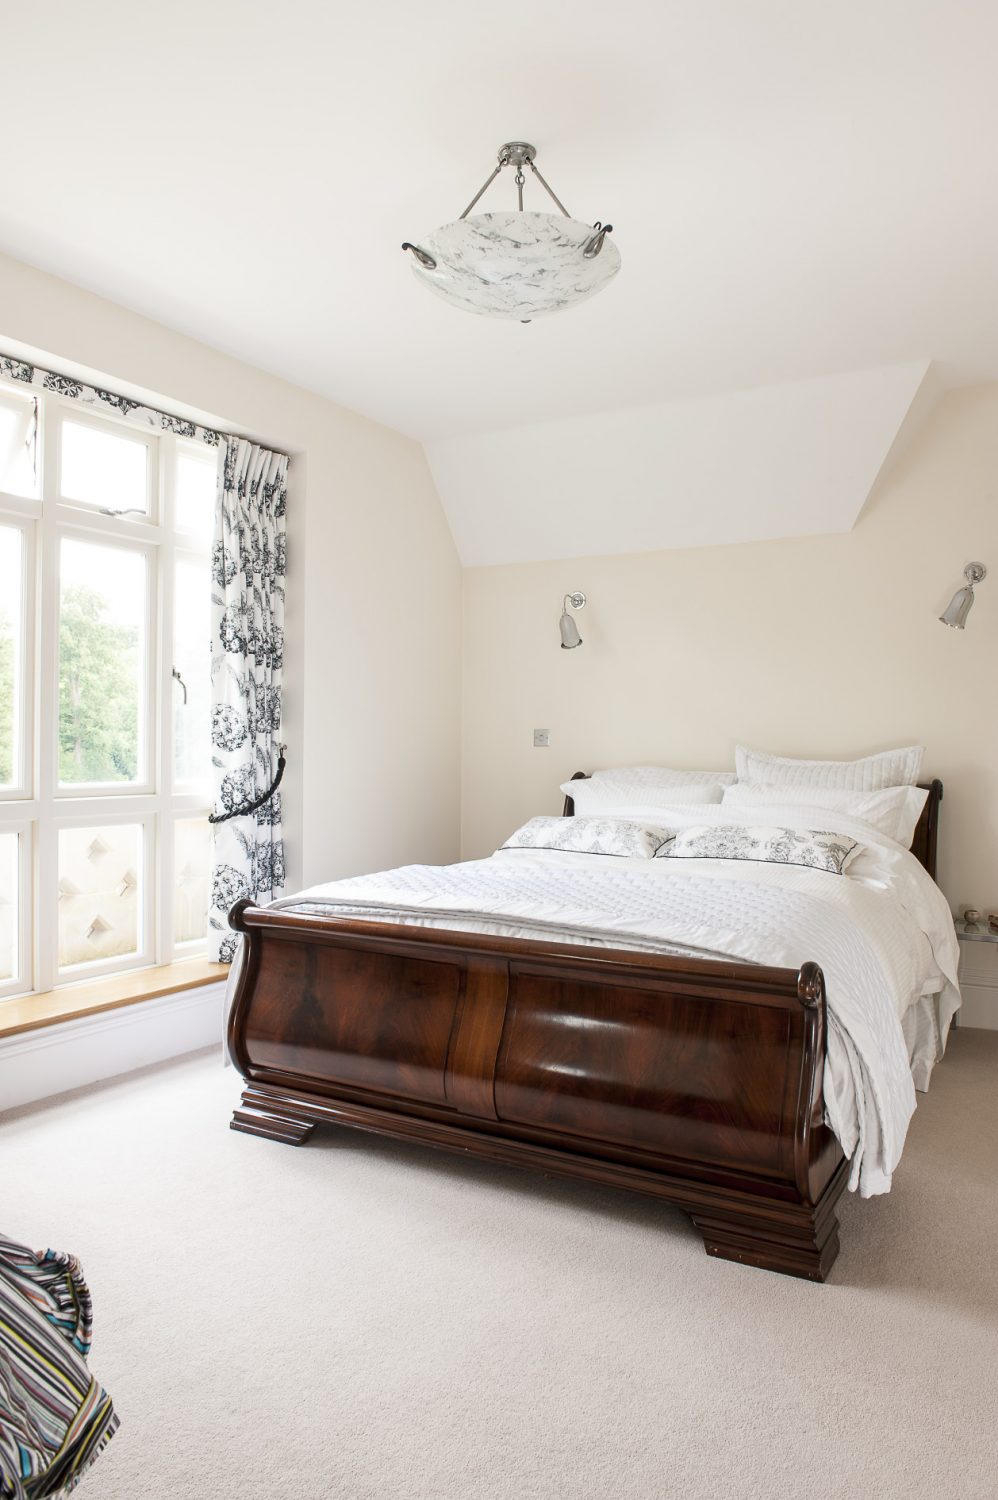 The master bedroom and en suite bathroom are simply decorated and furnished with an elegantly dramatic black and white colour scheme